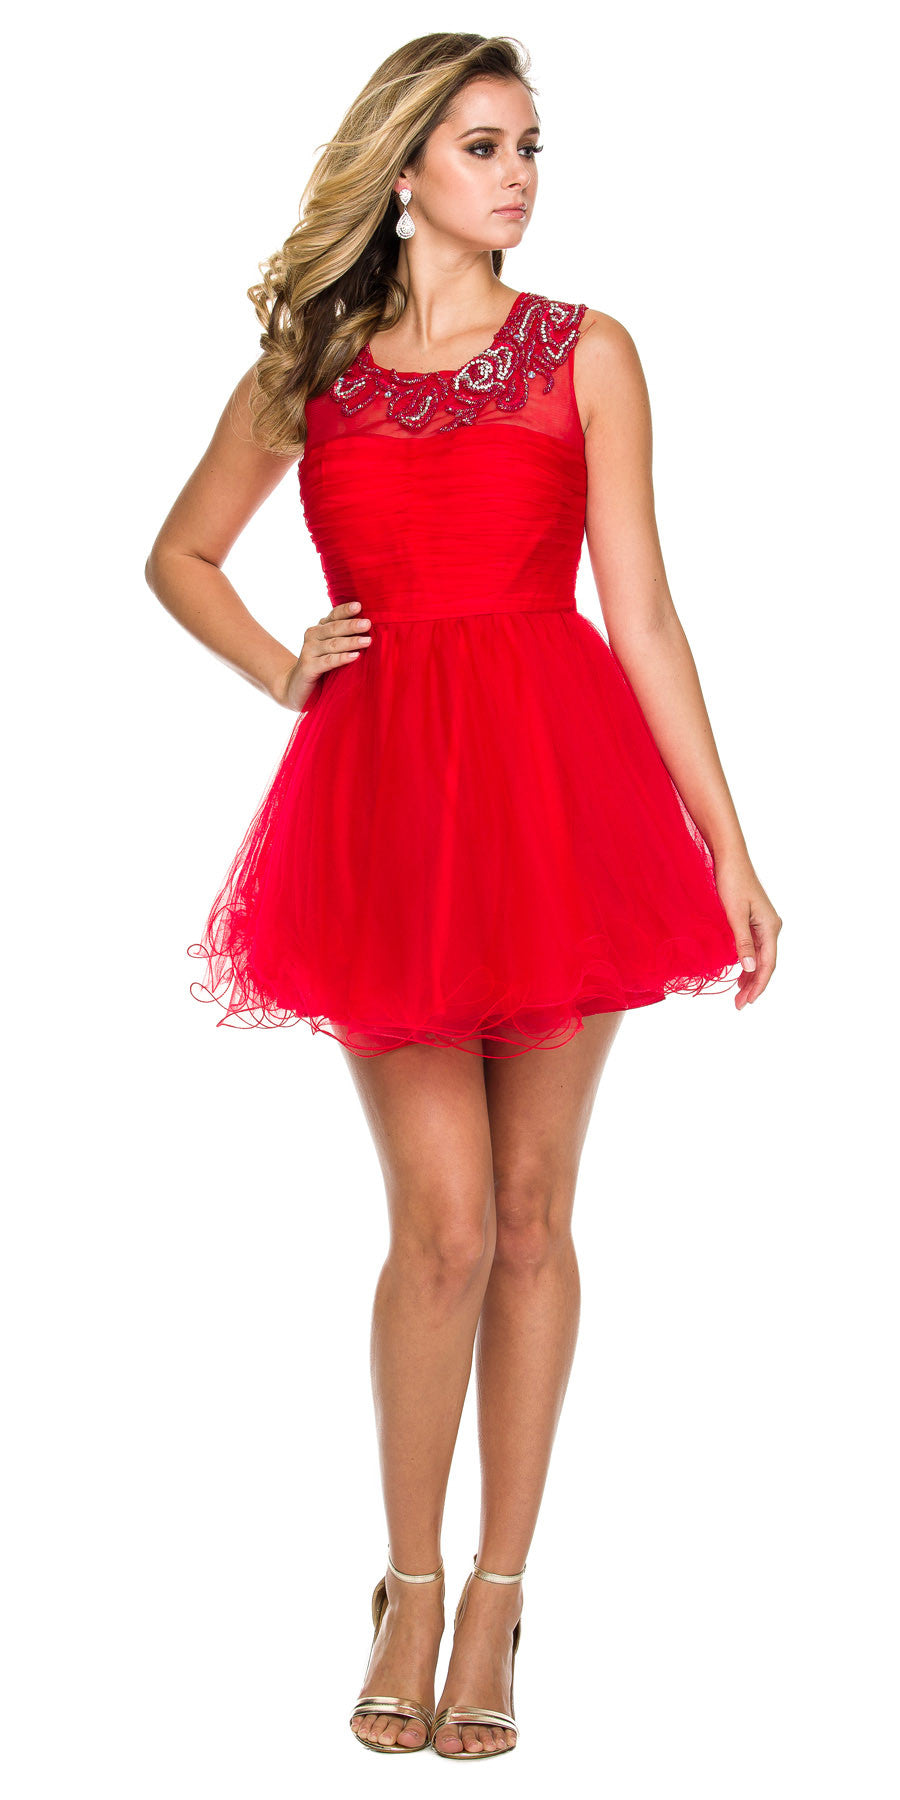 Short Poofy Tulle Prom Dress Red Illusion Beaded Neckline